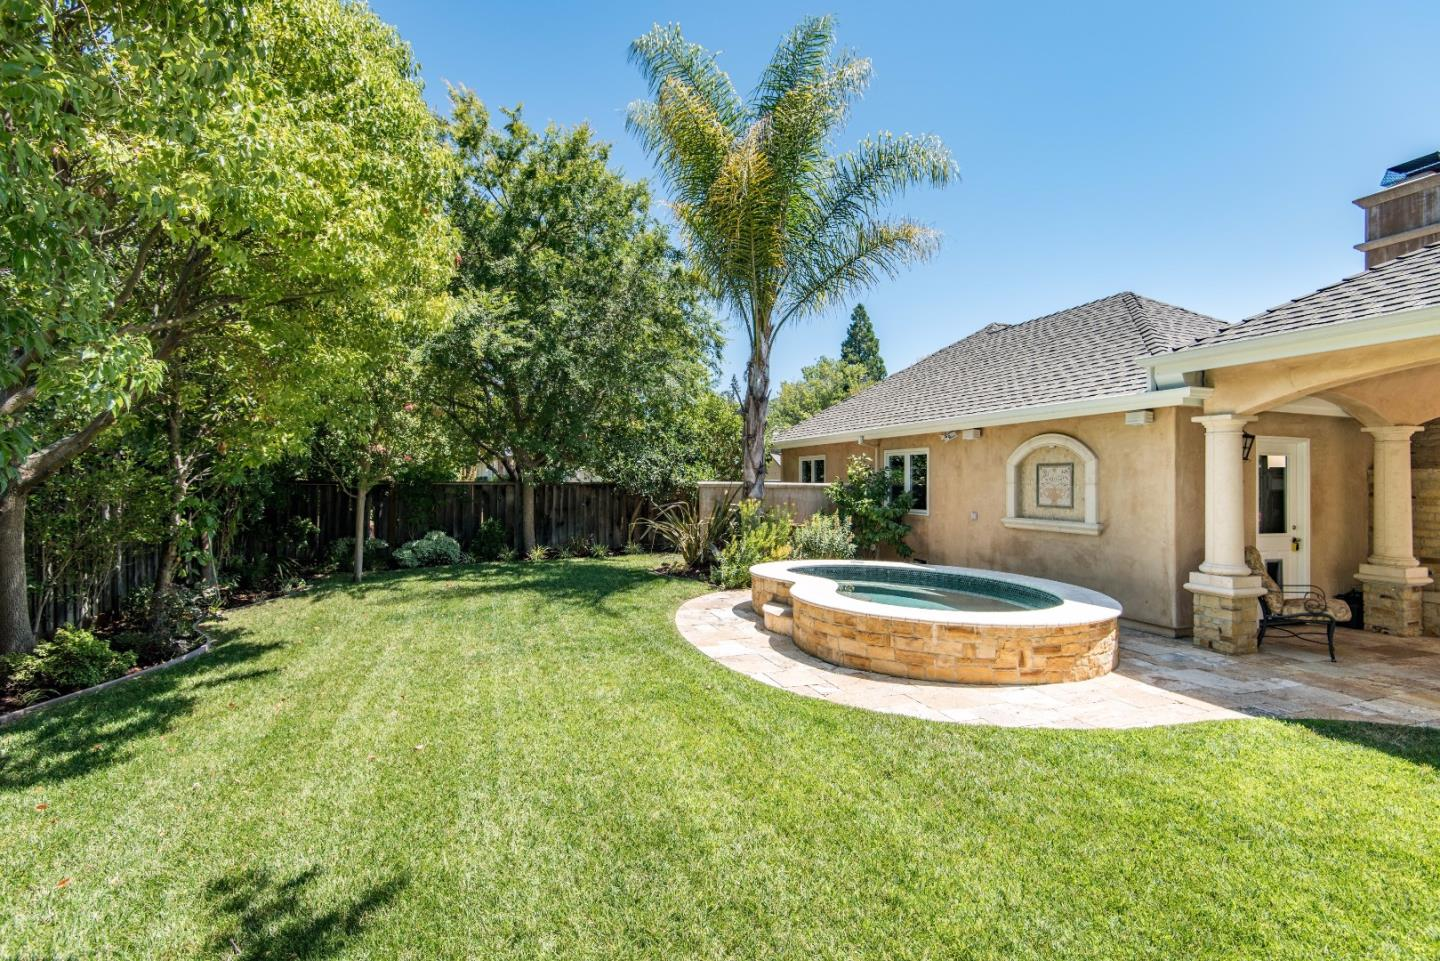 Additional photo for property listing at 16420 W LA CHIQUITA Avenue  Los Gatos, California 95032 United States